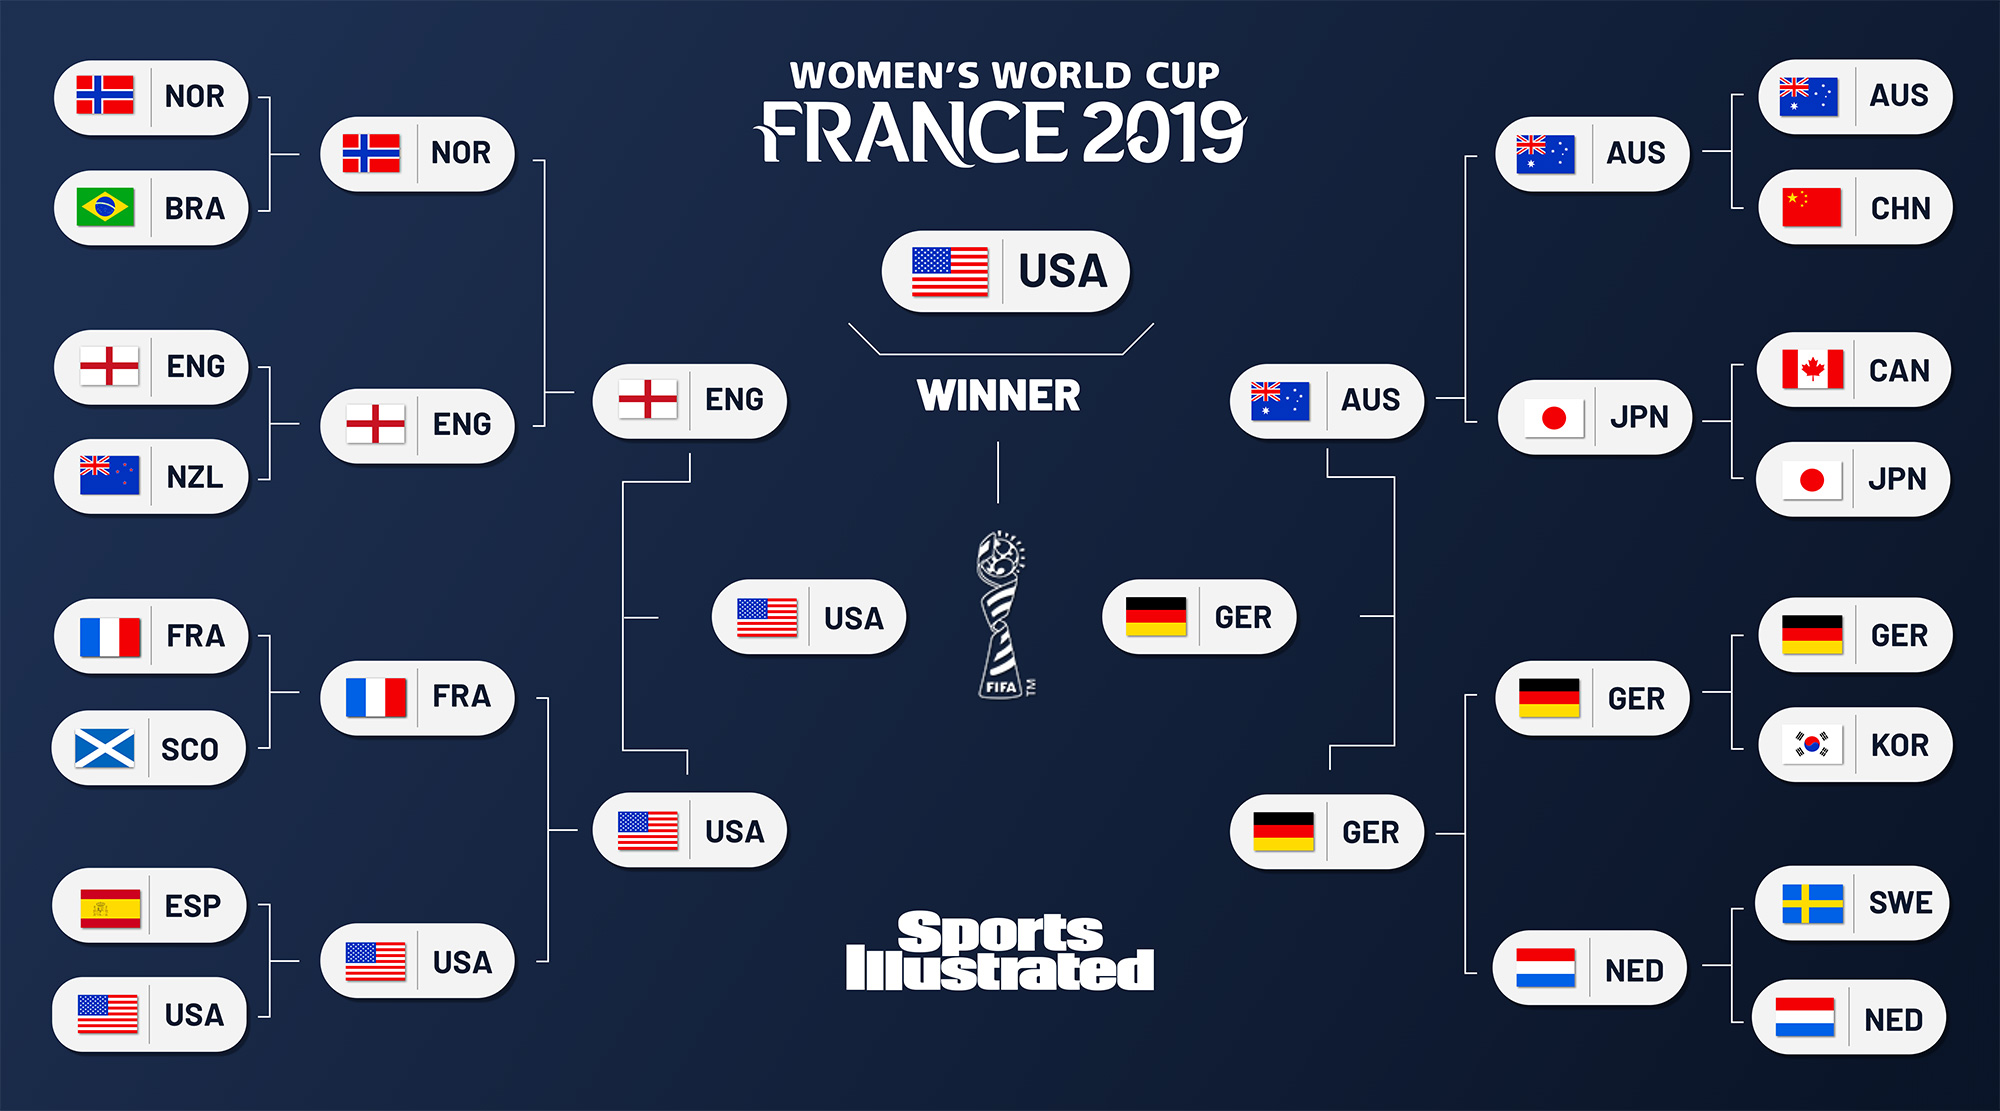 Predictions for the 2019 Women's World Cup